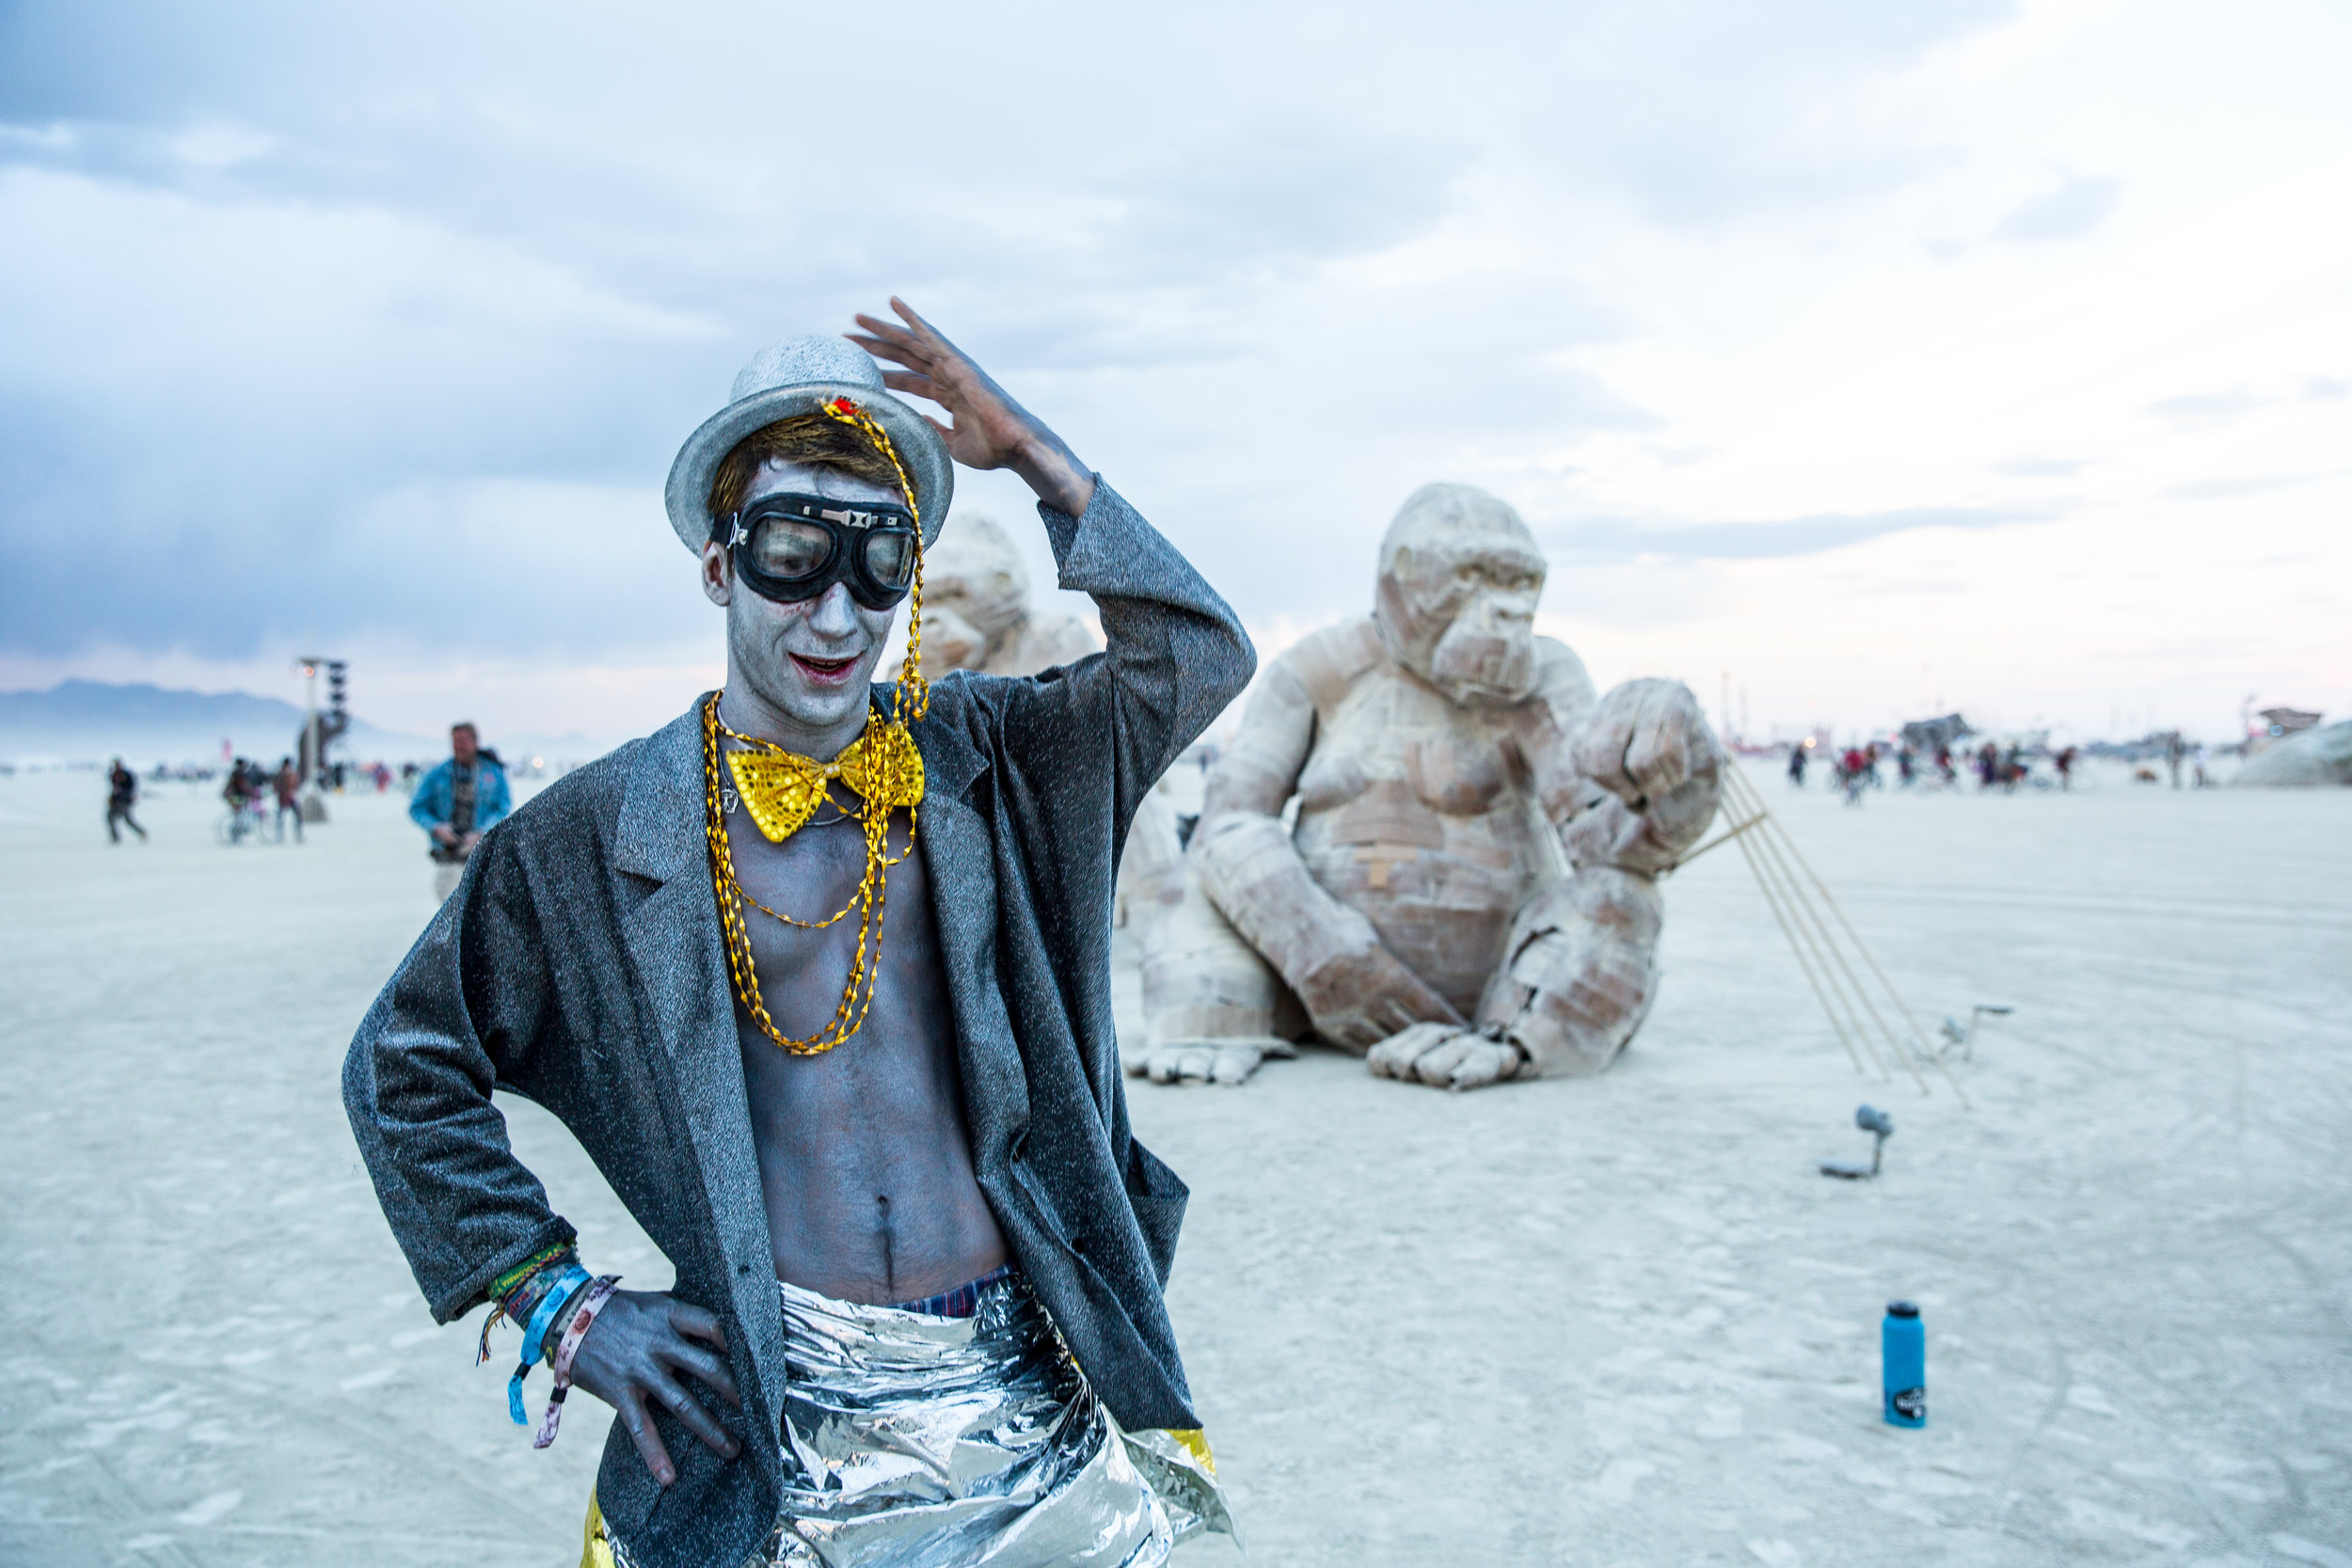 Burning_Man_201620160903_B5D7870.jpg